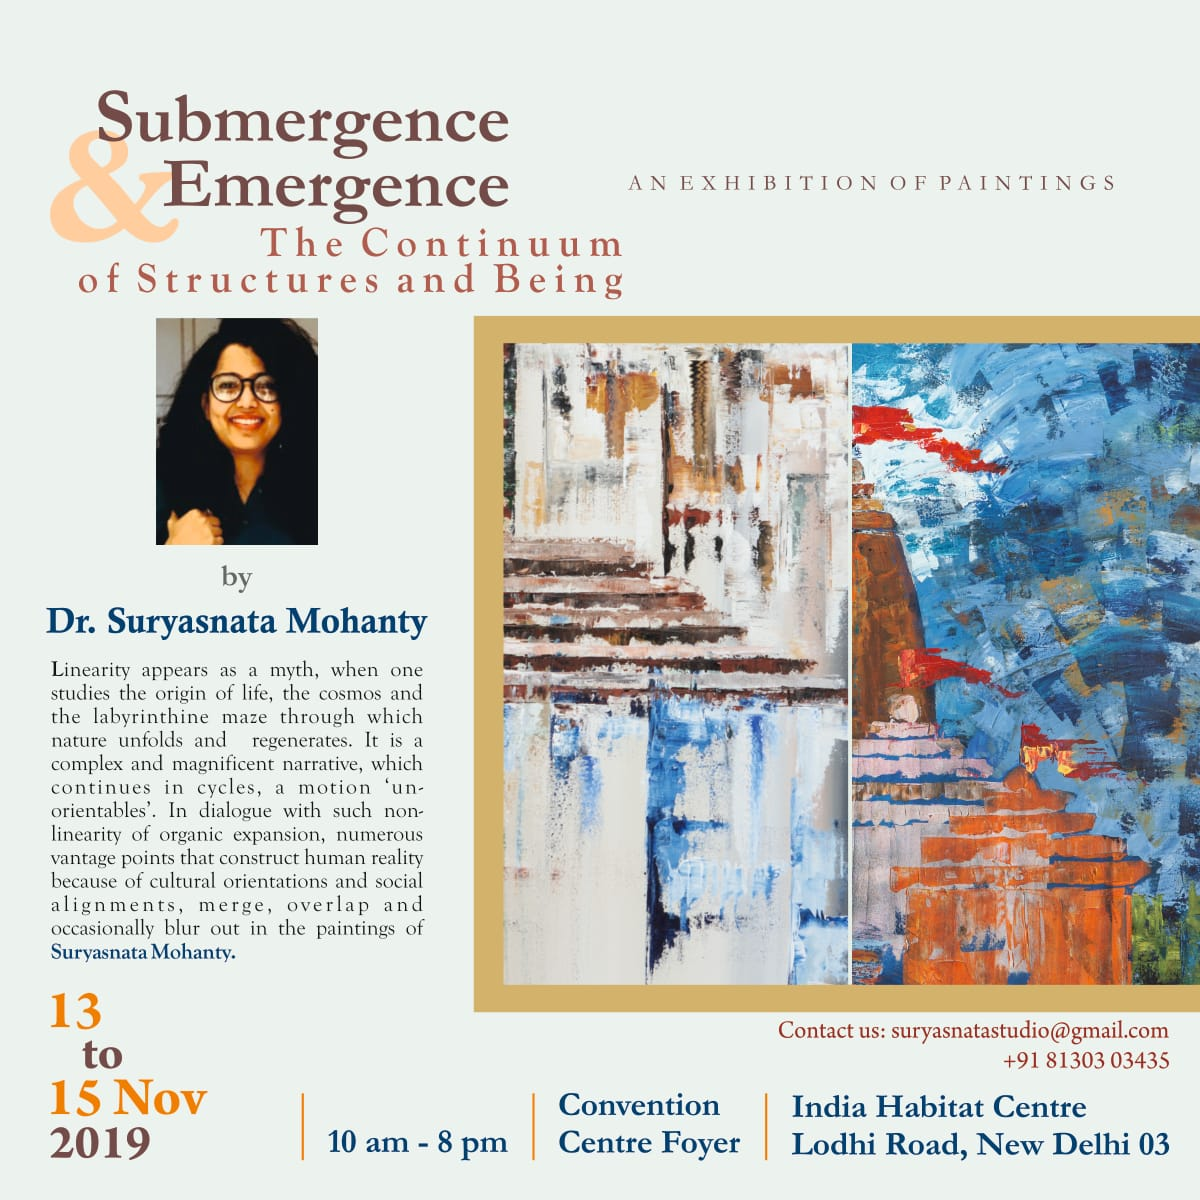 Submergence and Emergence: The  Continuum of Structures and Being'a solo  show of paintings, acrylic on canvas, by  Dr. Suryasnata Mohanty